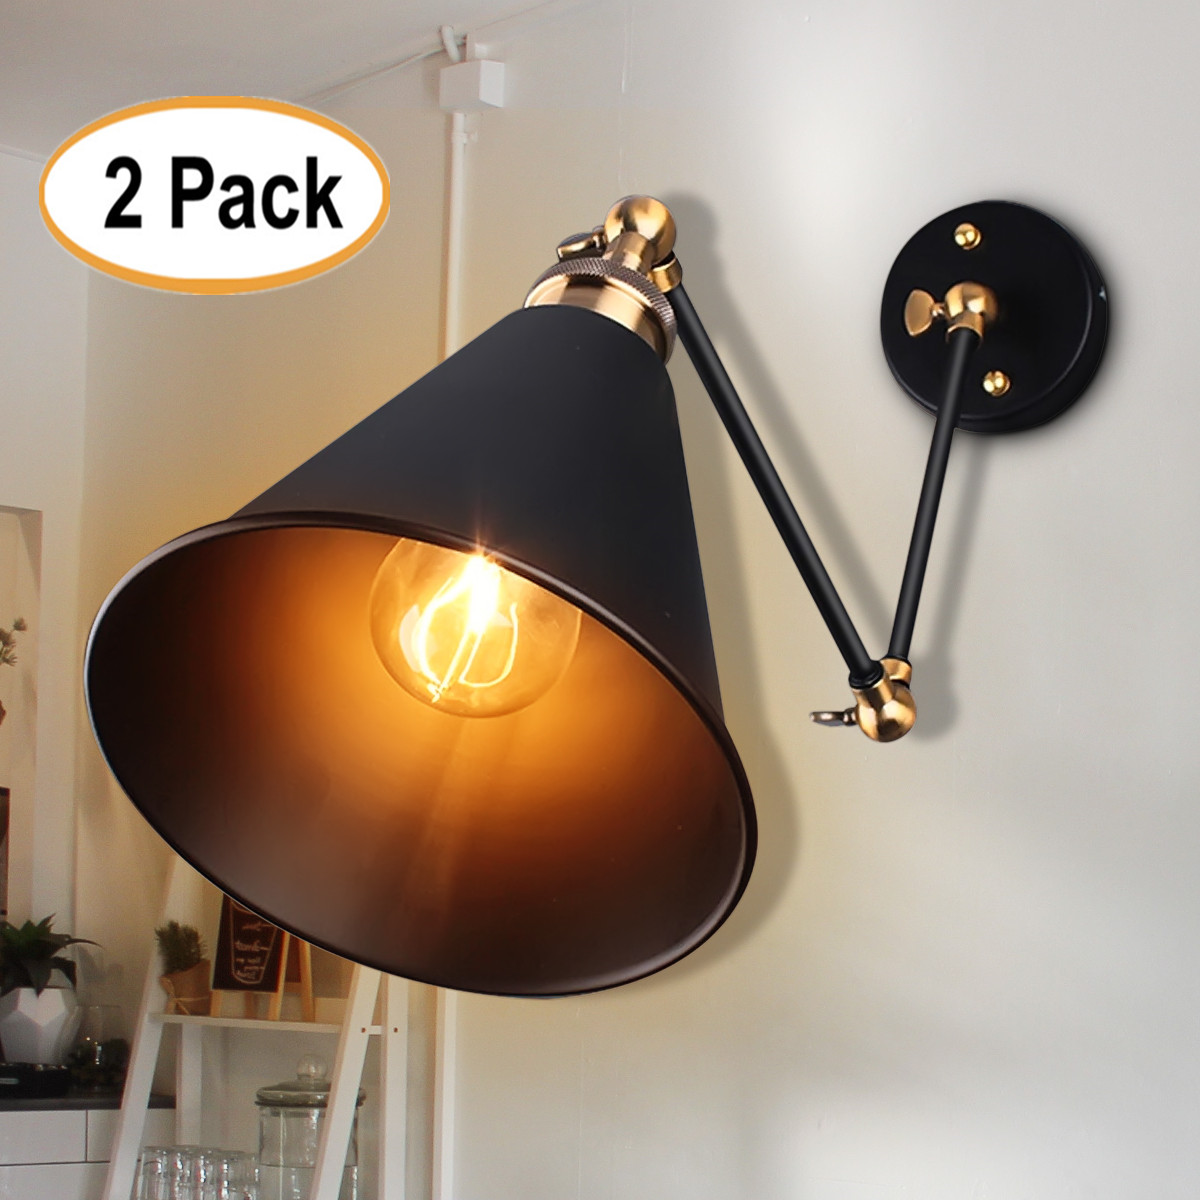 (No Fix) 2Pcs Industrial Vintage 270° Swing Arm Wall Sconce Wall Lamp E27 Light Fixture For Home Coffee Shop